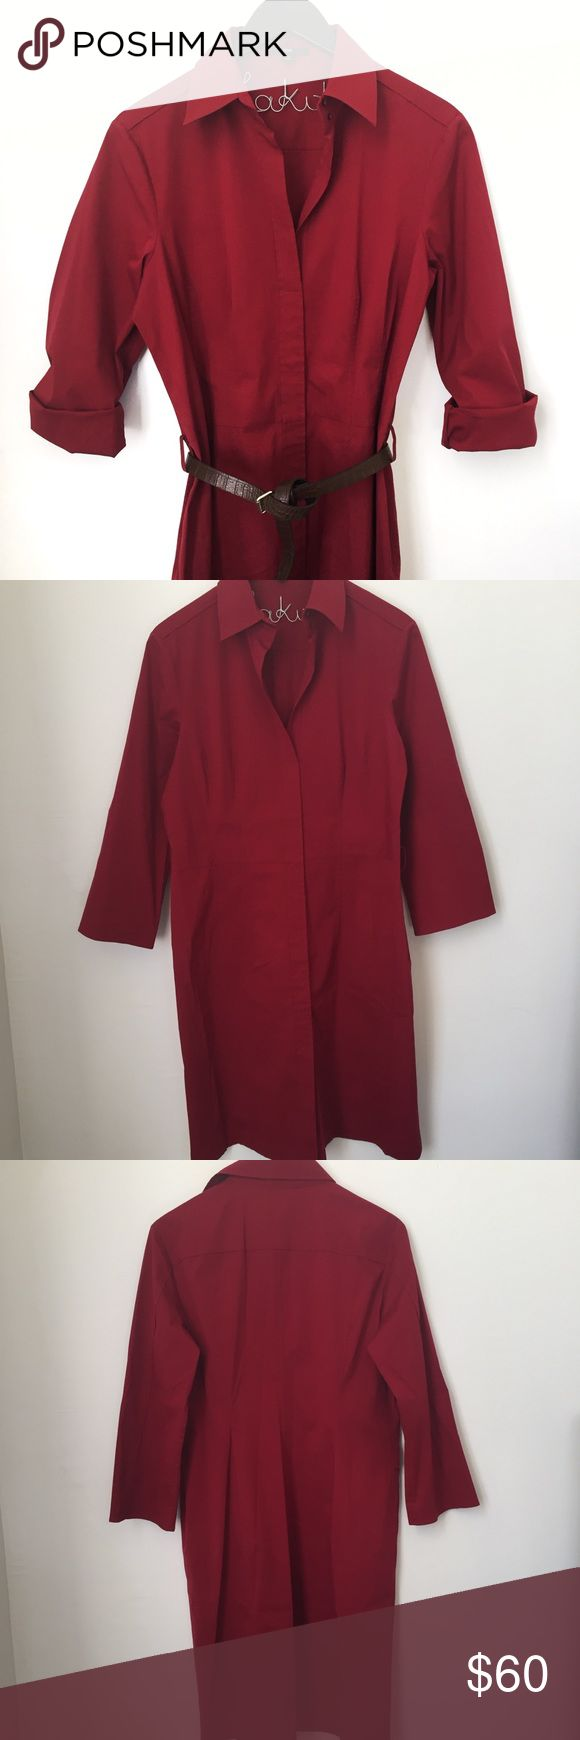 """Hugo Boss Burgundy Shirt Dress NWOT. No stains, no rips. The only thing is that it does not come with the belt.  3/4 sleeve. Concealed side zipper. Deep red color.  Aprox Measurements laying flat....  Pit to pit: 20.5"""", sleeve inseam 14"""", Length 39.5""""  ☠ No Trades ♡ Offers welcome ♡ Bundle discounts (2+) available!  ♡ IG: makita_banana 509 Hugo Boss Dresses"""